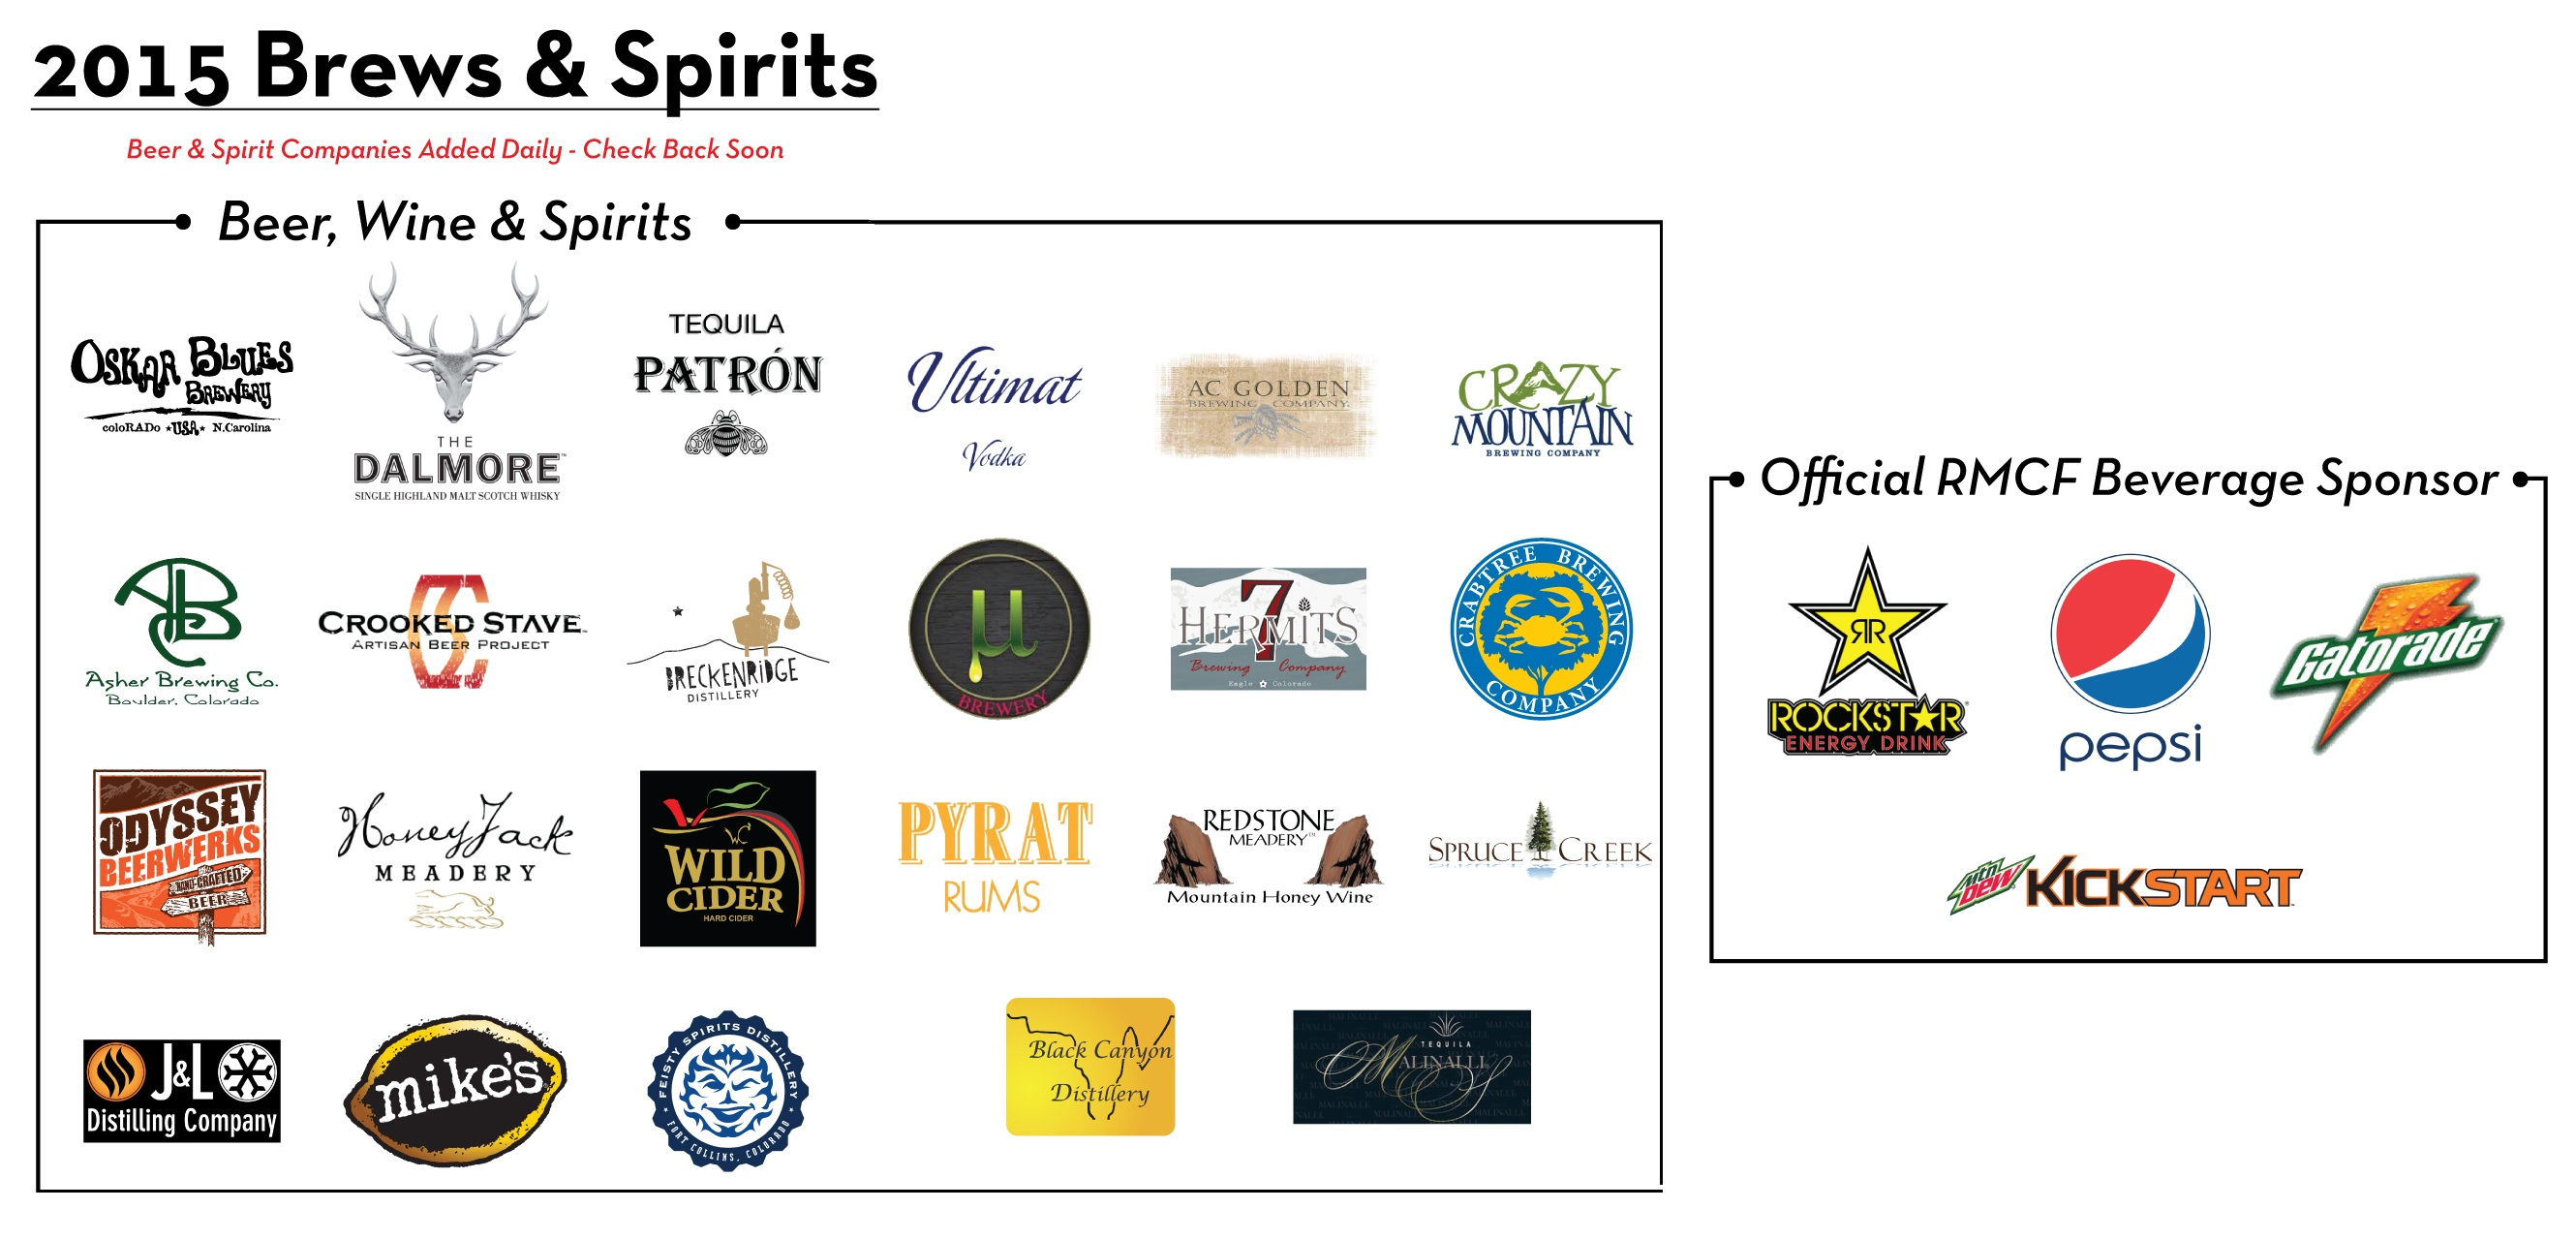 2015 Brews & Spirits and Beverage Sponsors